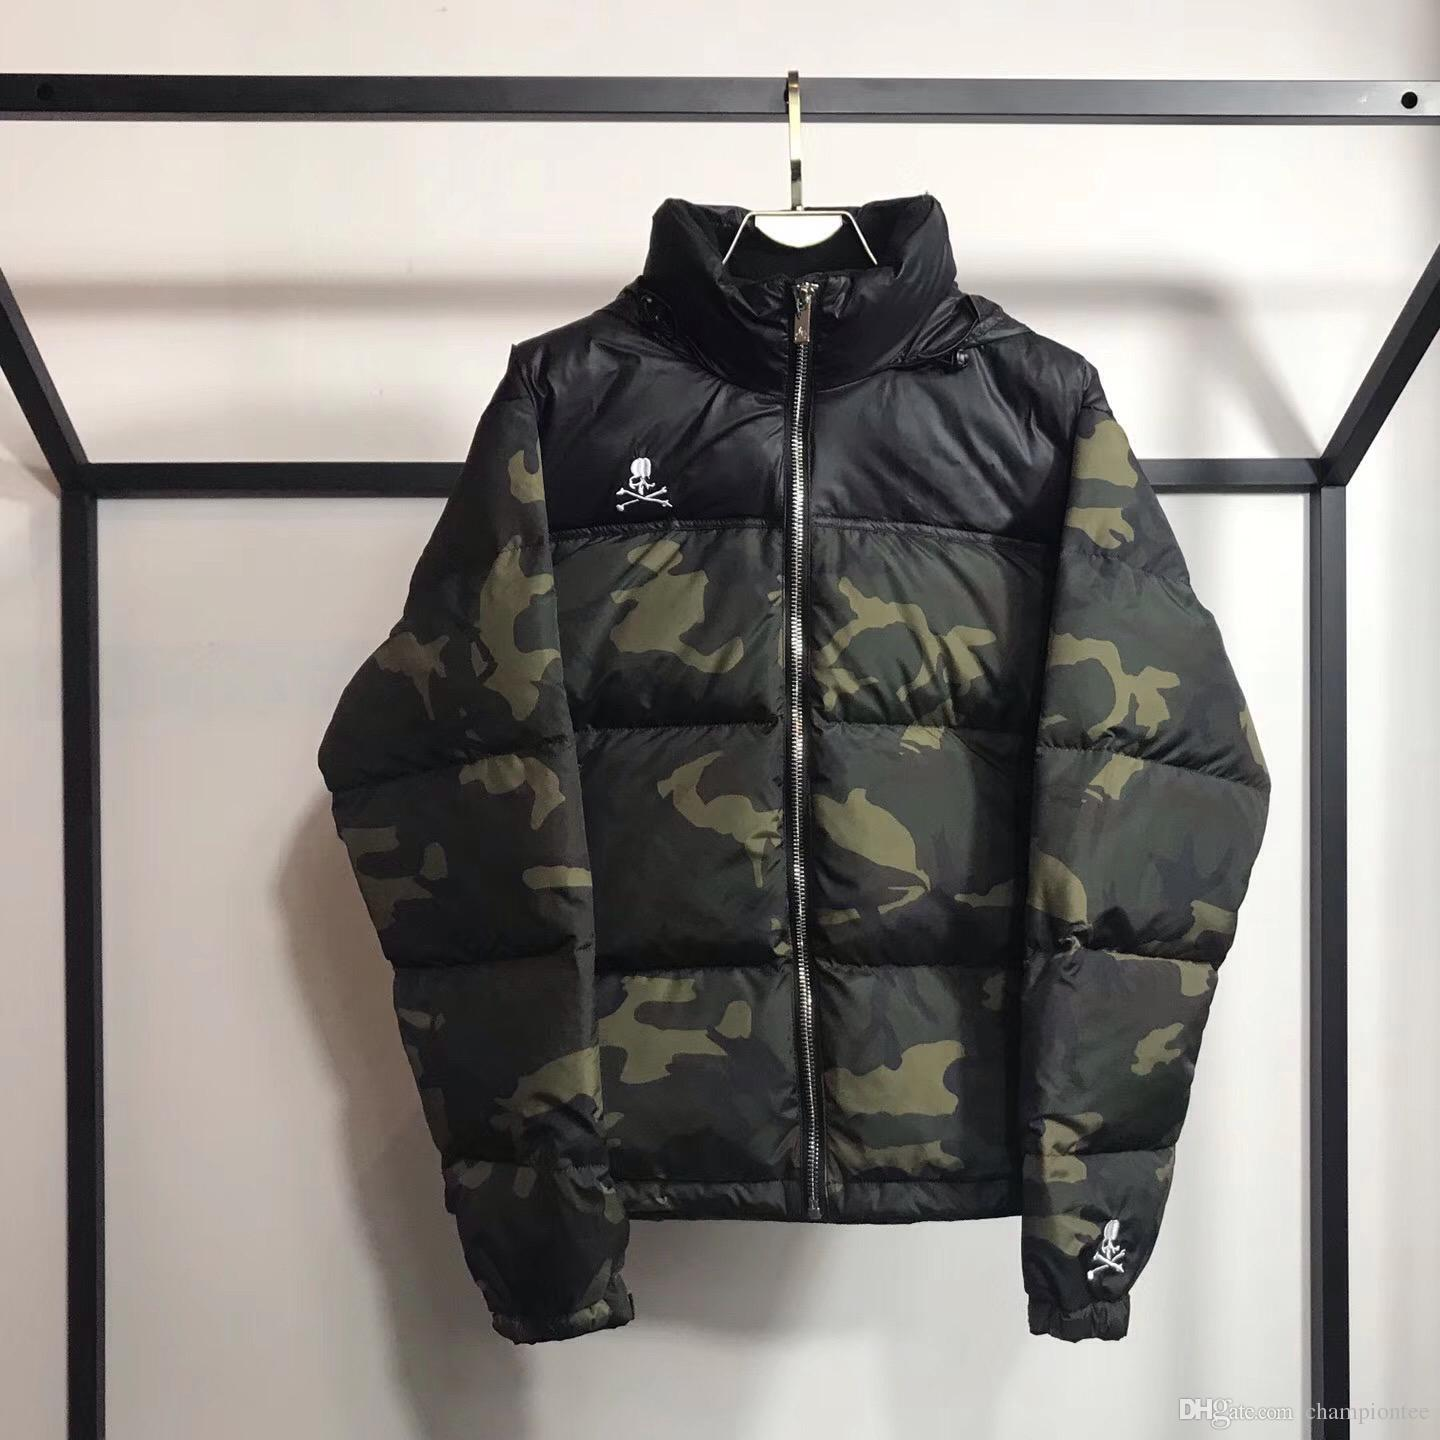 a7924f6335553 2019 Brand Cooperation Mastermind World Down Jacket Fashion Windproof Thick  Outerwear Winter Down Jacket Black Camo From Championtee, $124.88 |  DHgate.Com